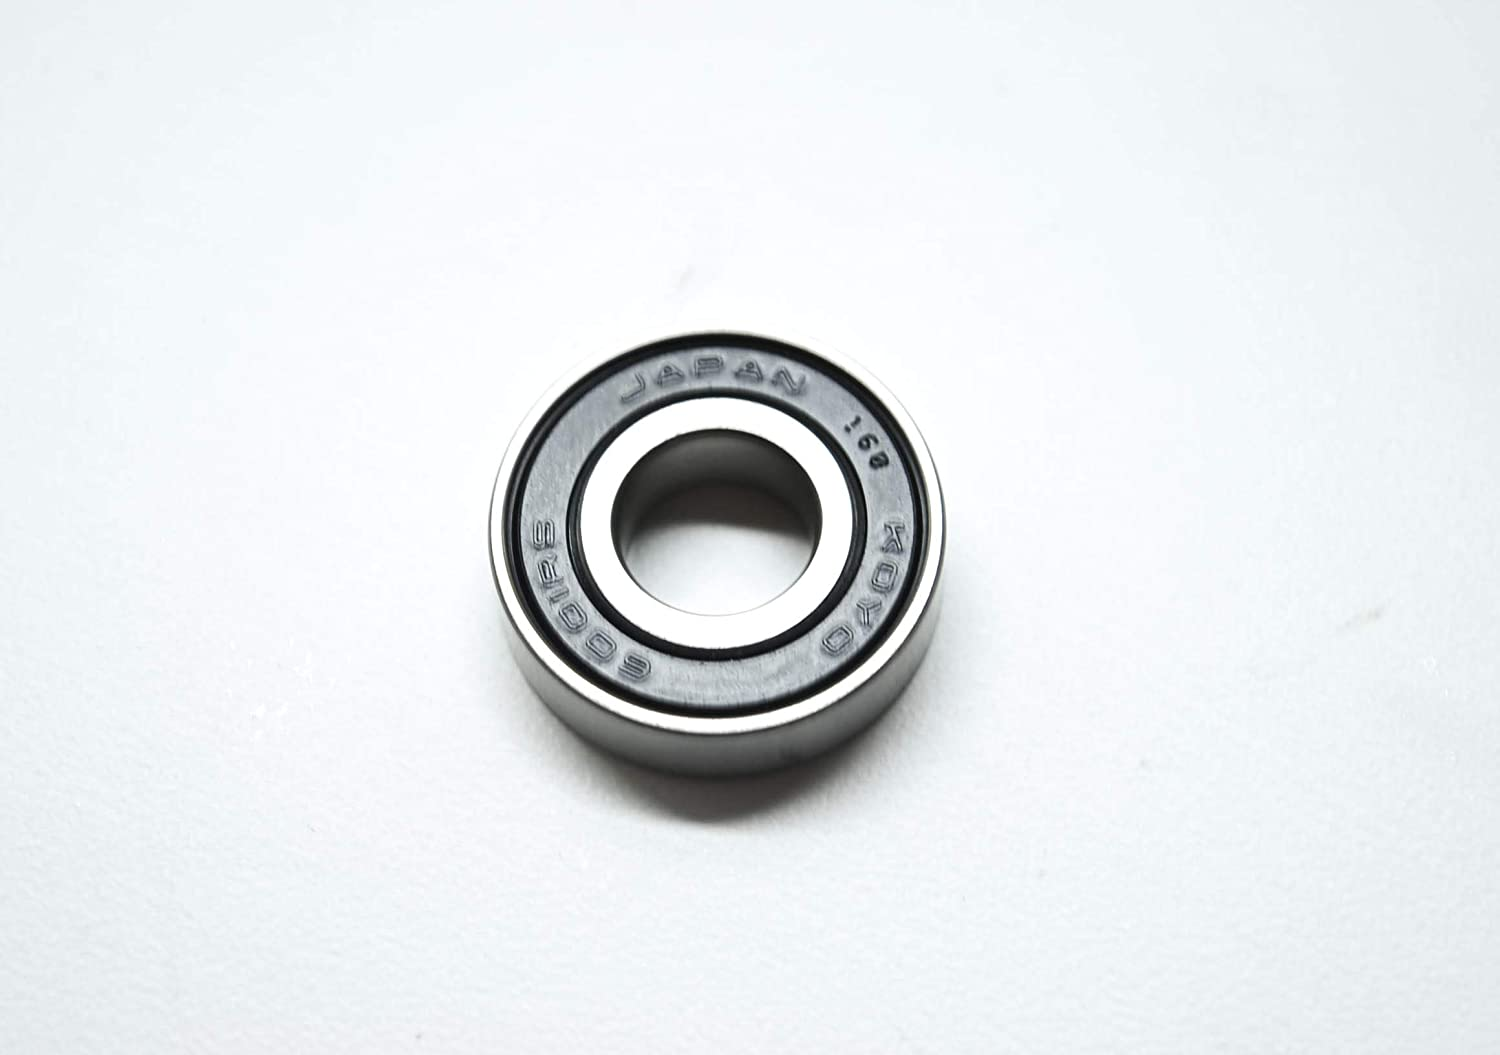 Yamaha 93306-00108-00 Bearing; 933060010800 Made by Yamaha